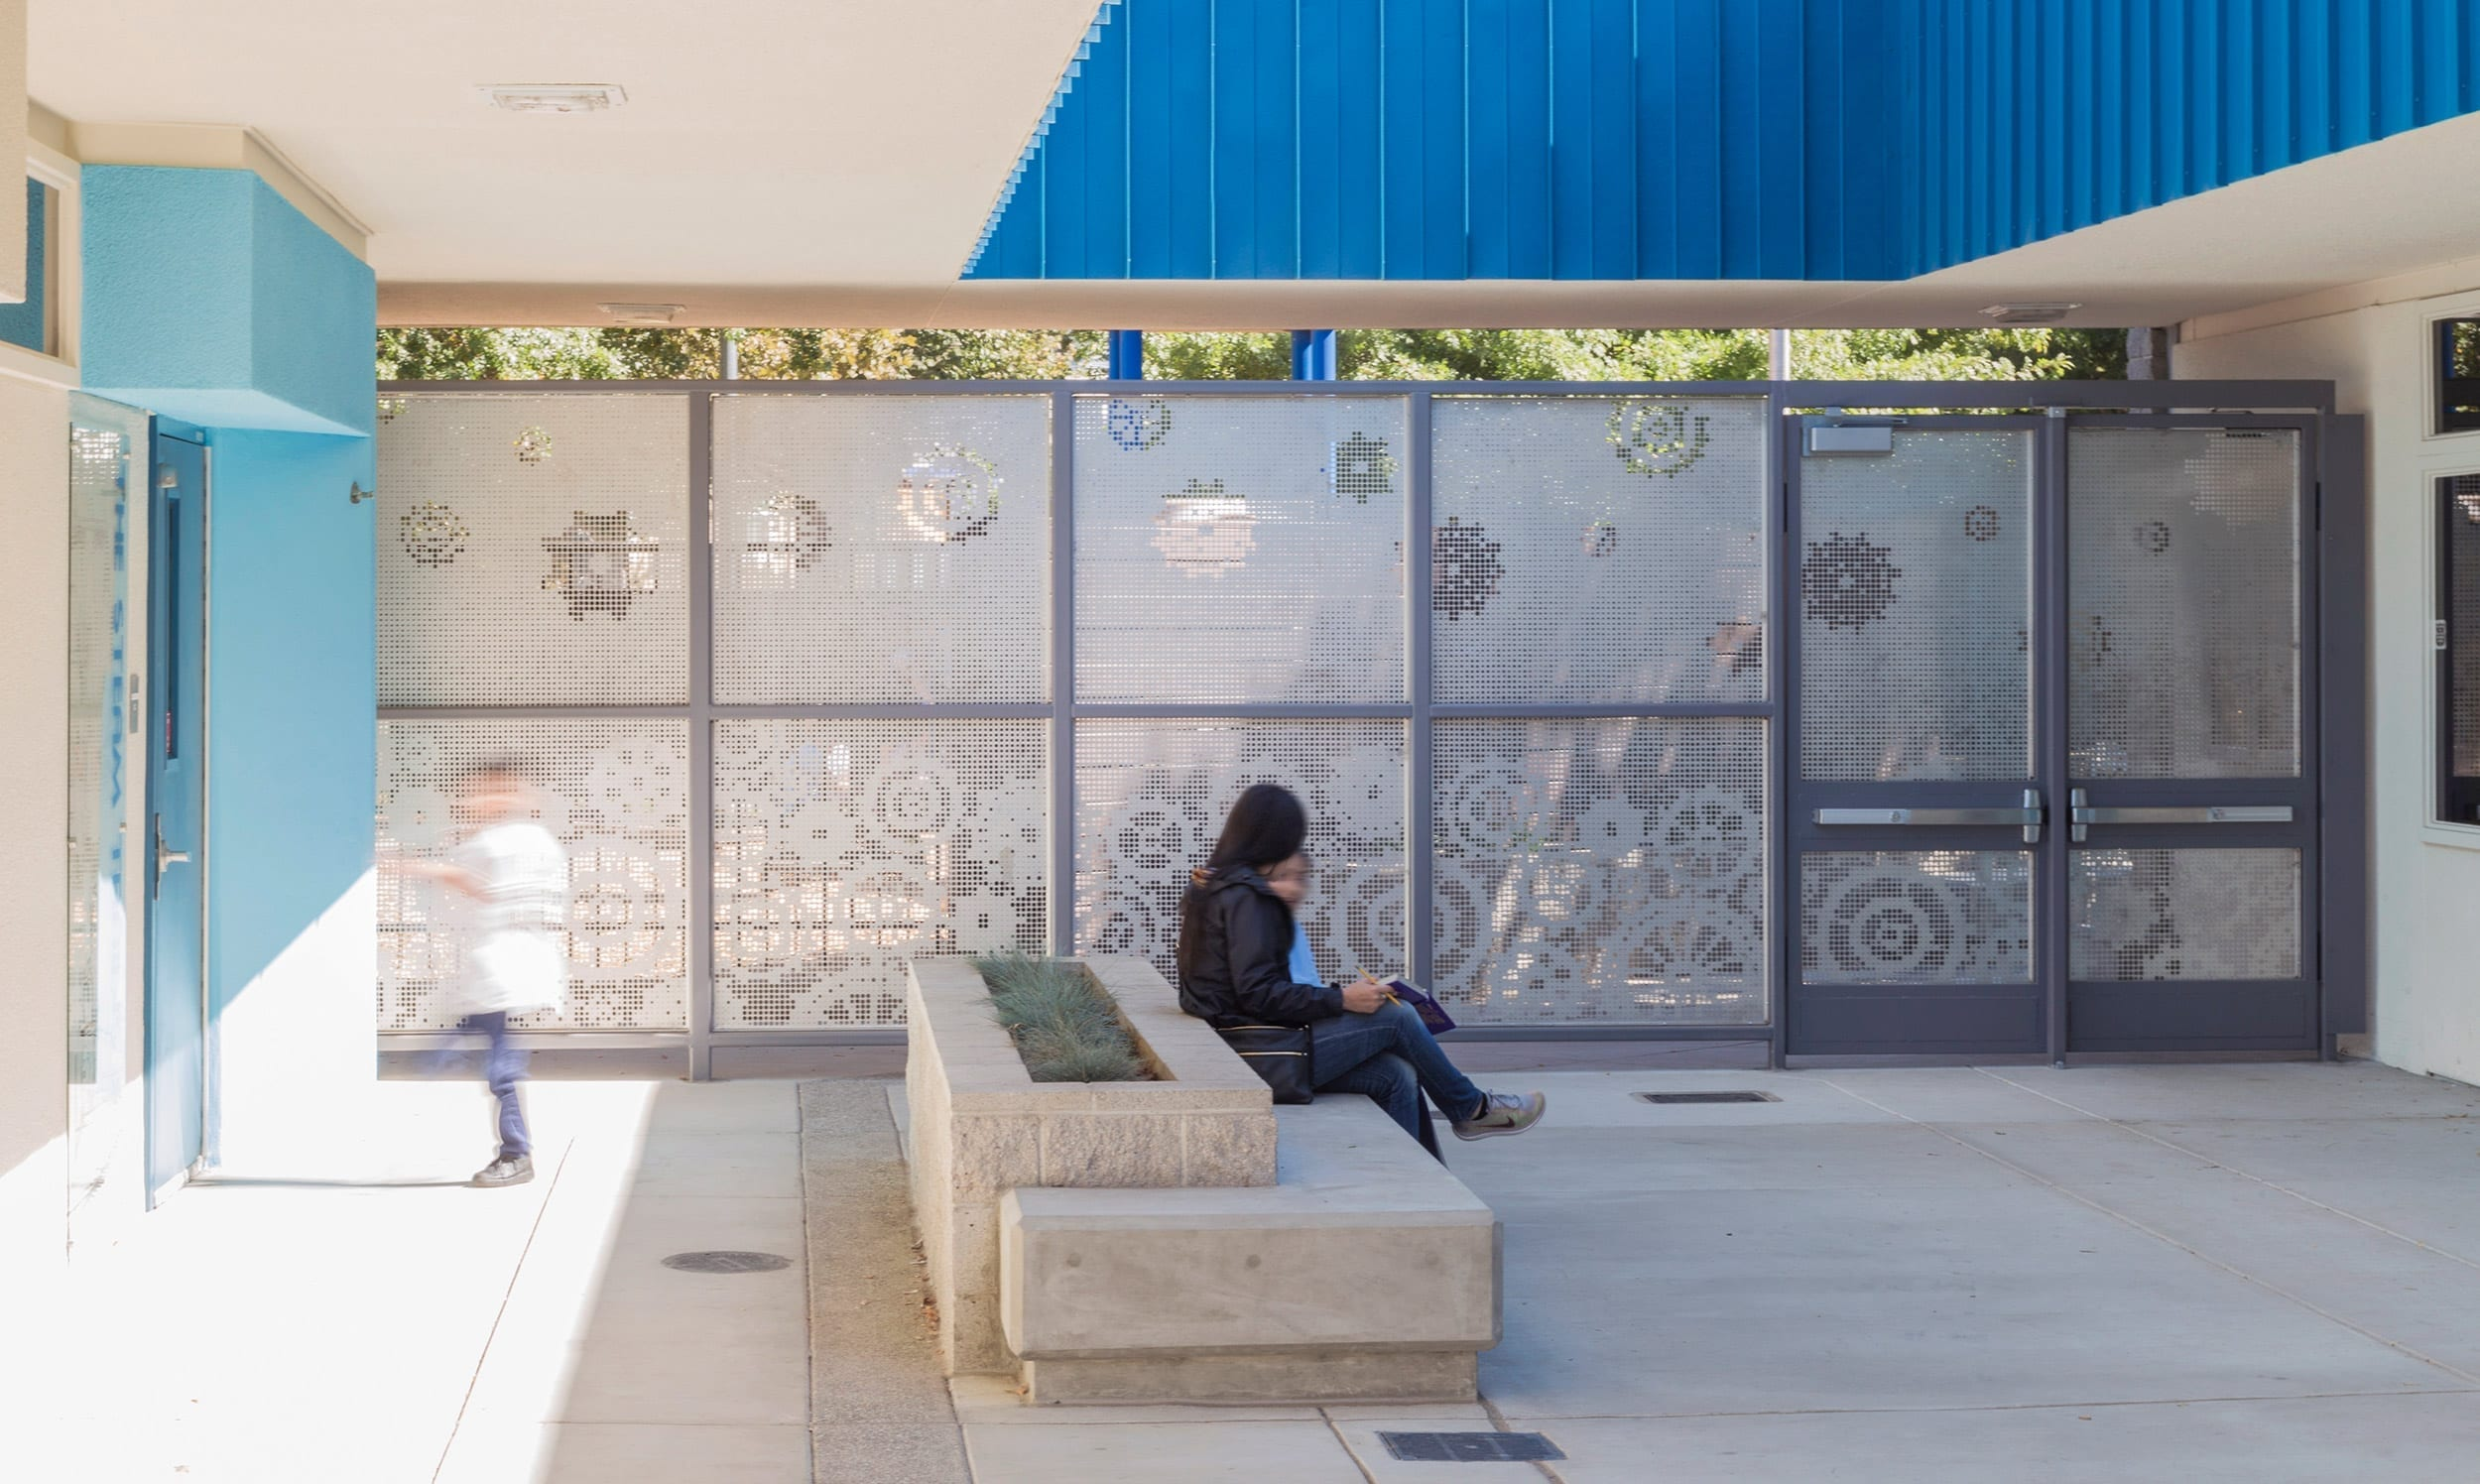 A clever perforated screen wall protects and inspires.